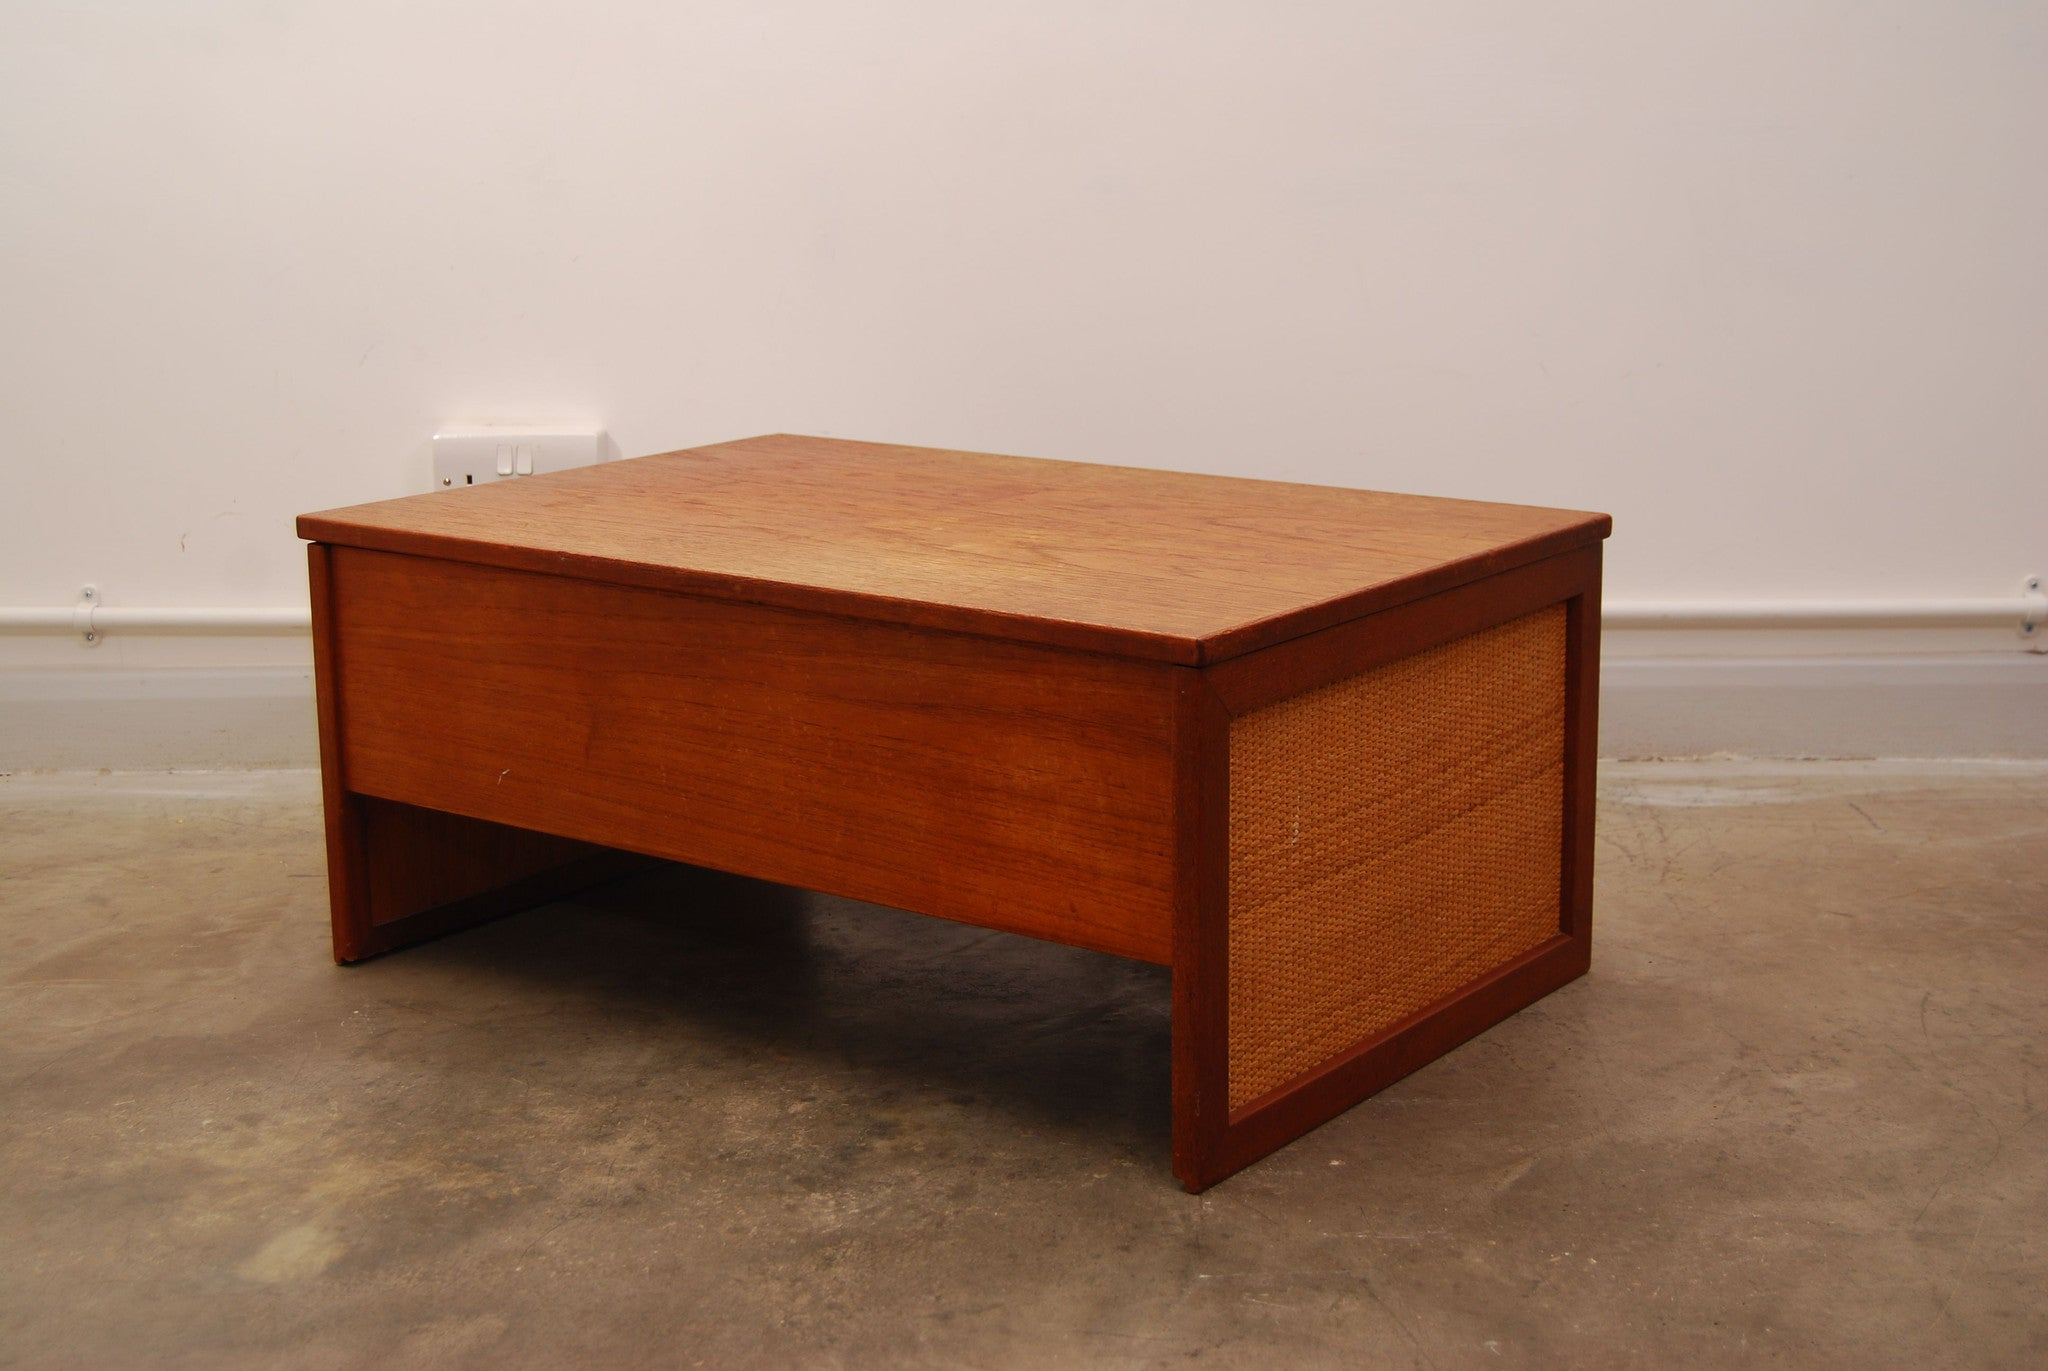 Teak bedside chest by Hans Olsen